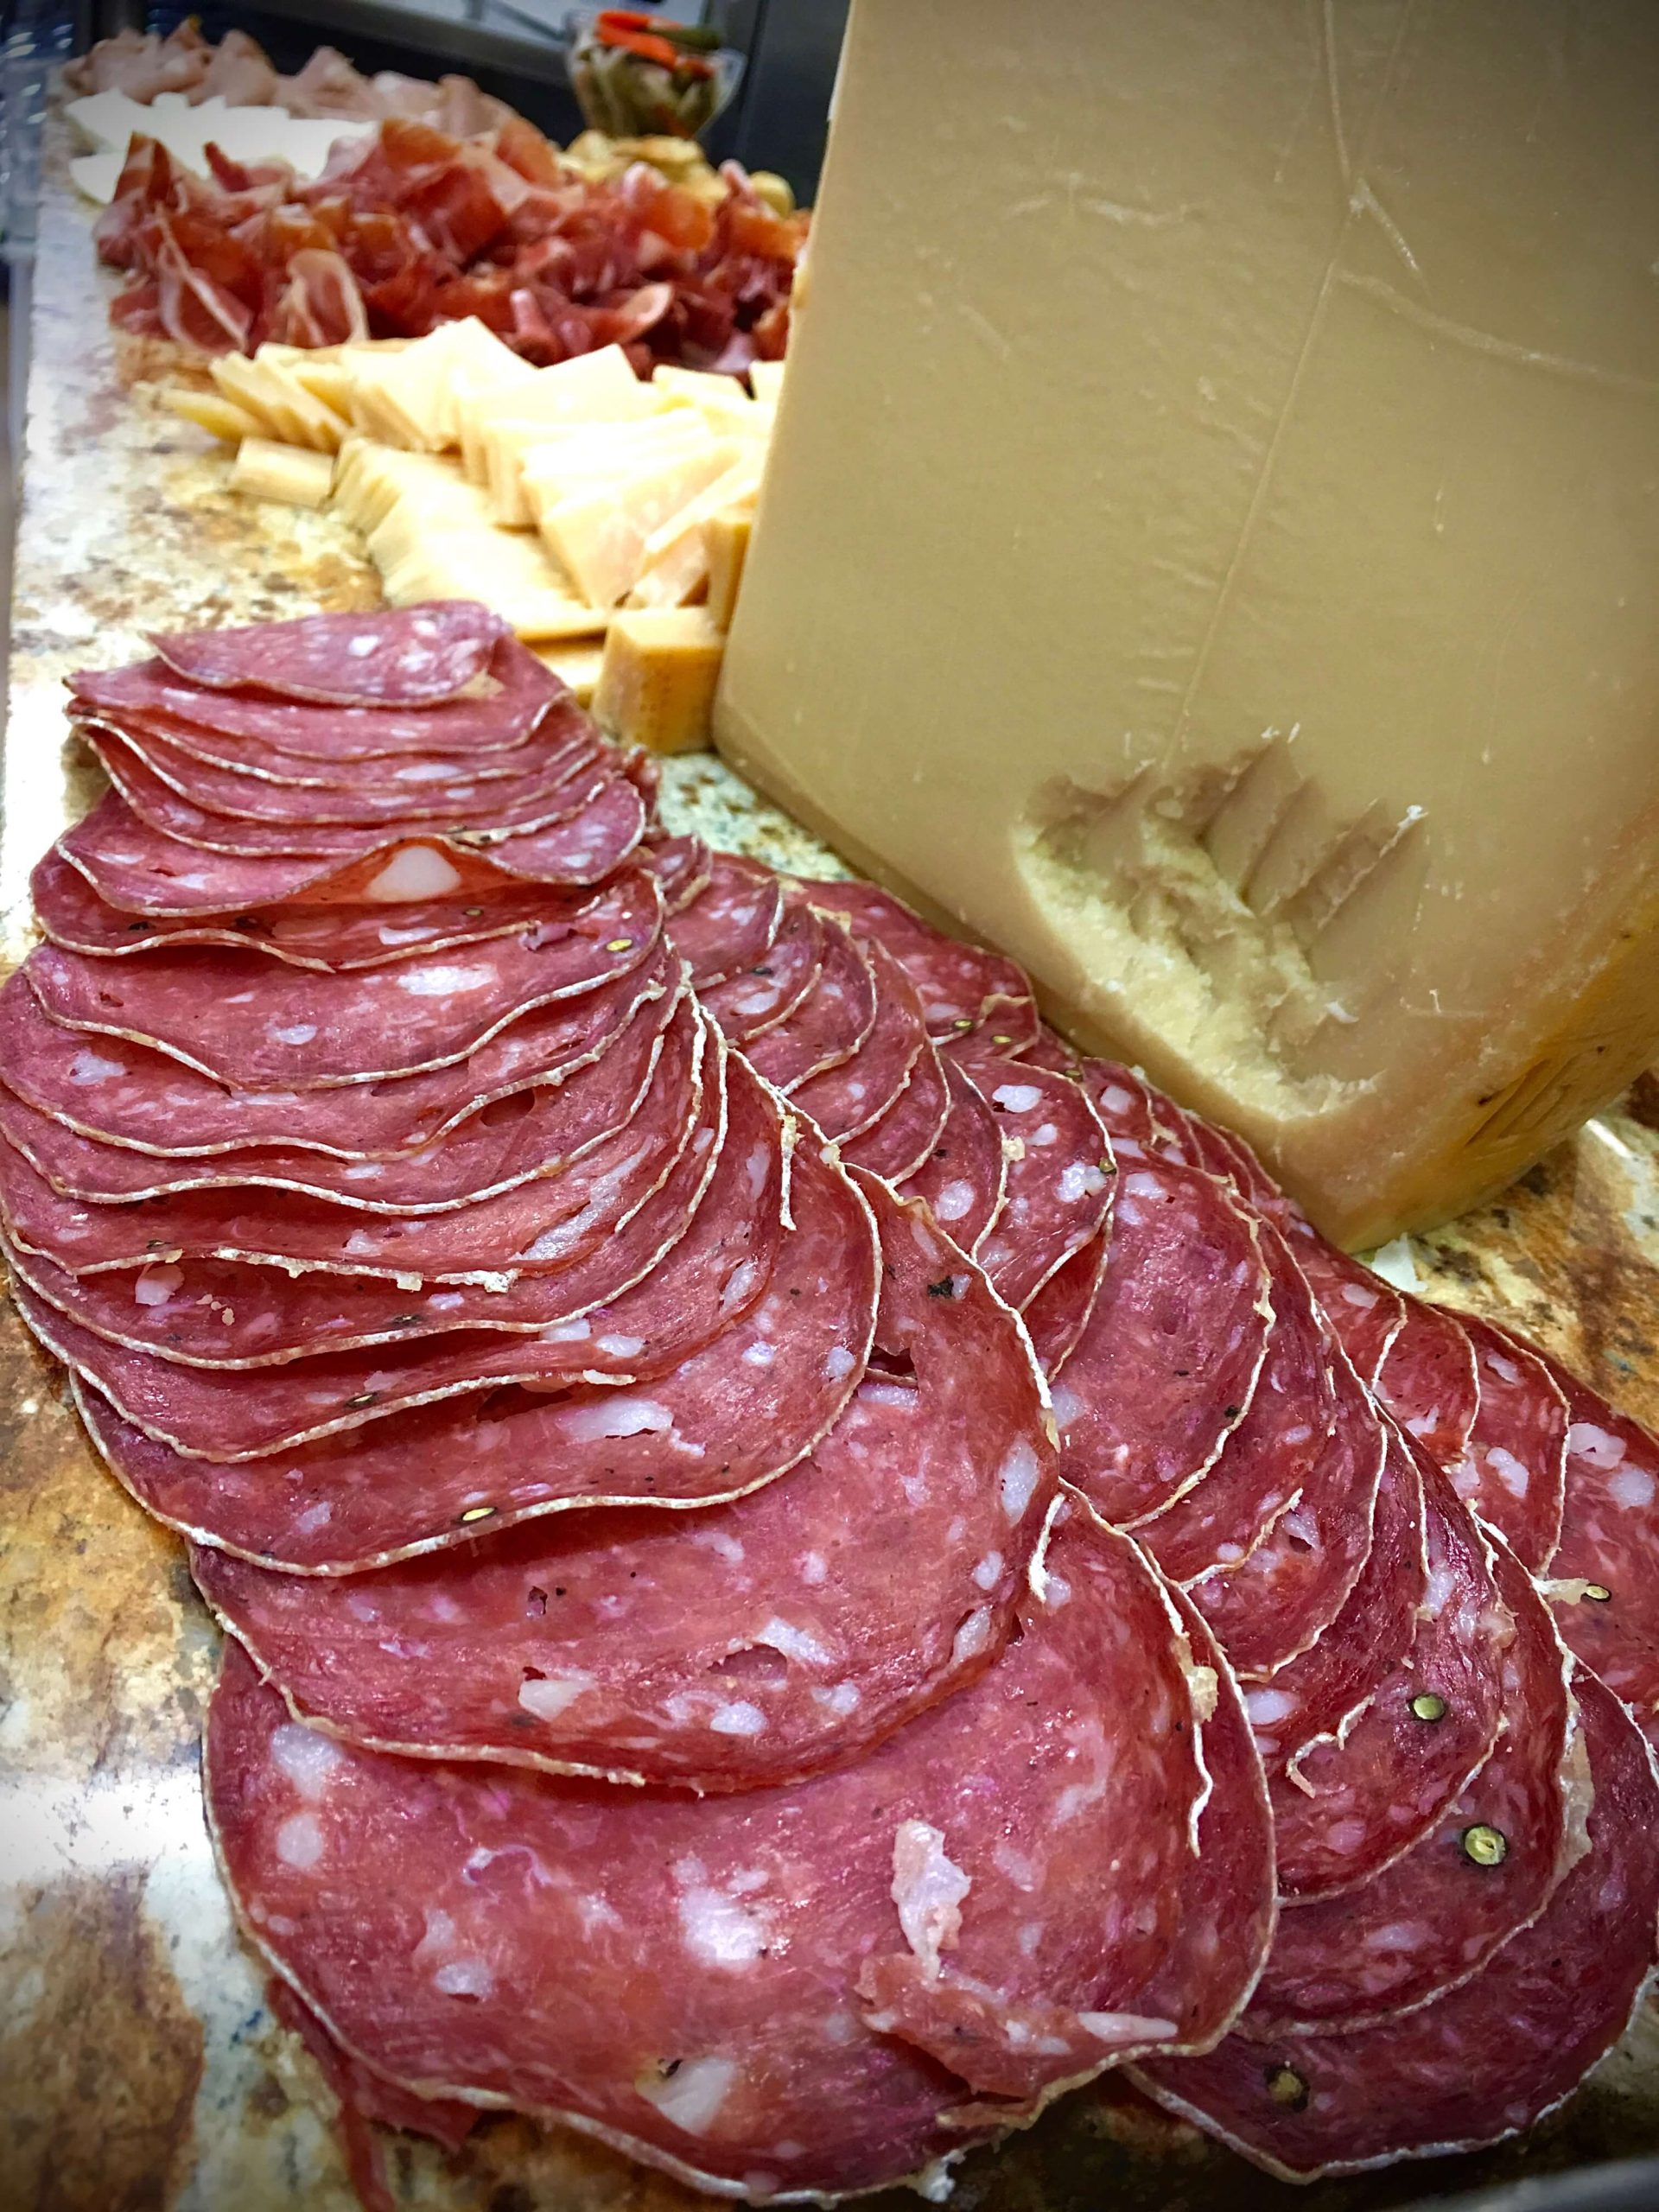 Sliced salami and a hunk of pareggiano reggiano cheese